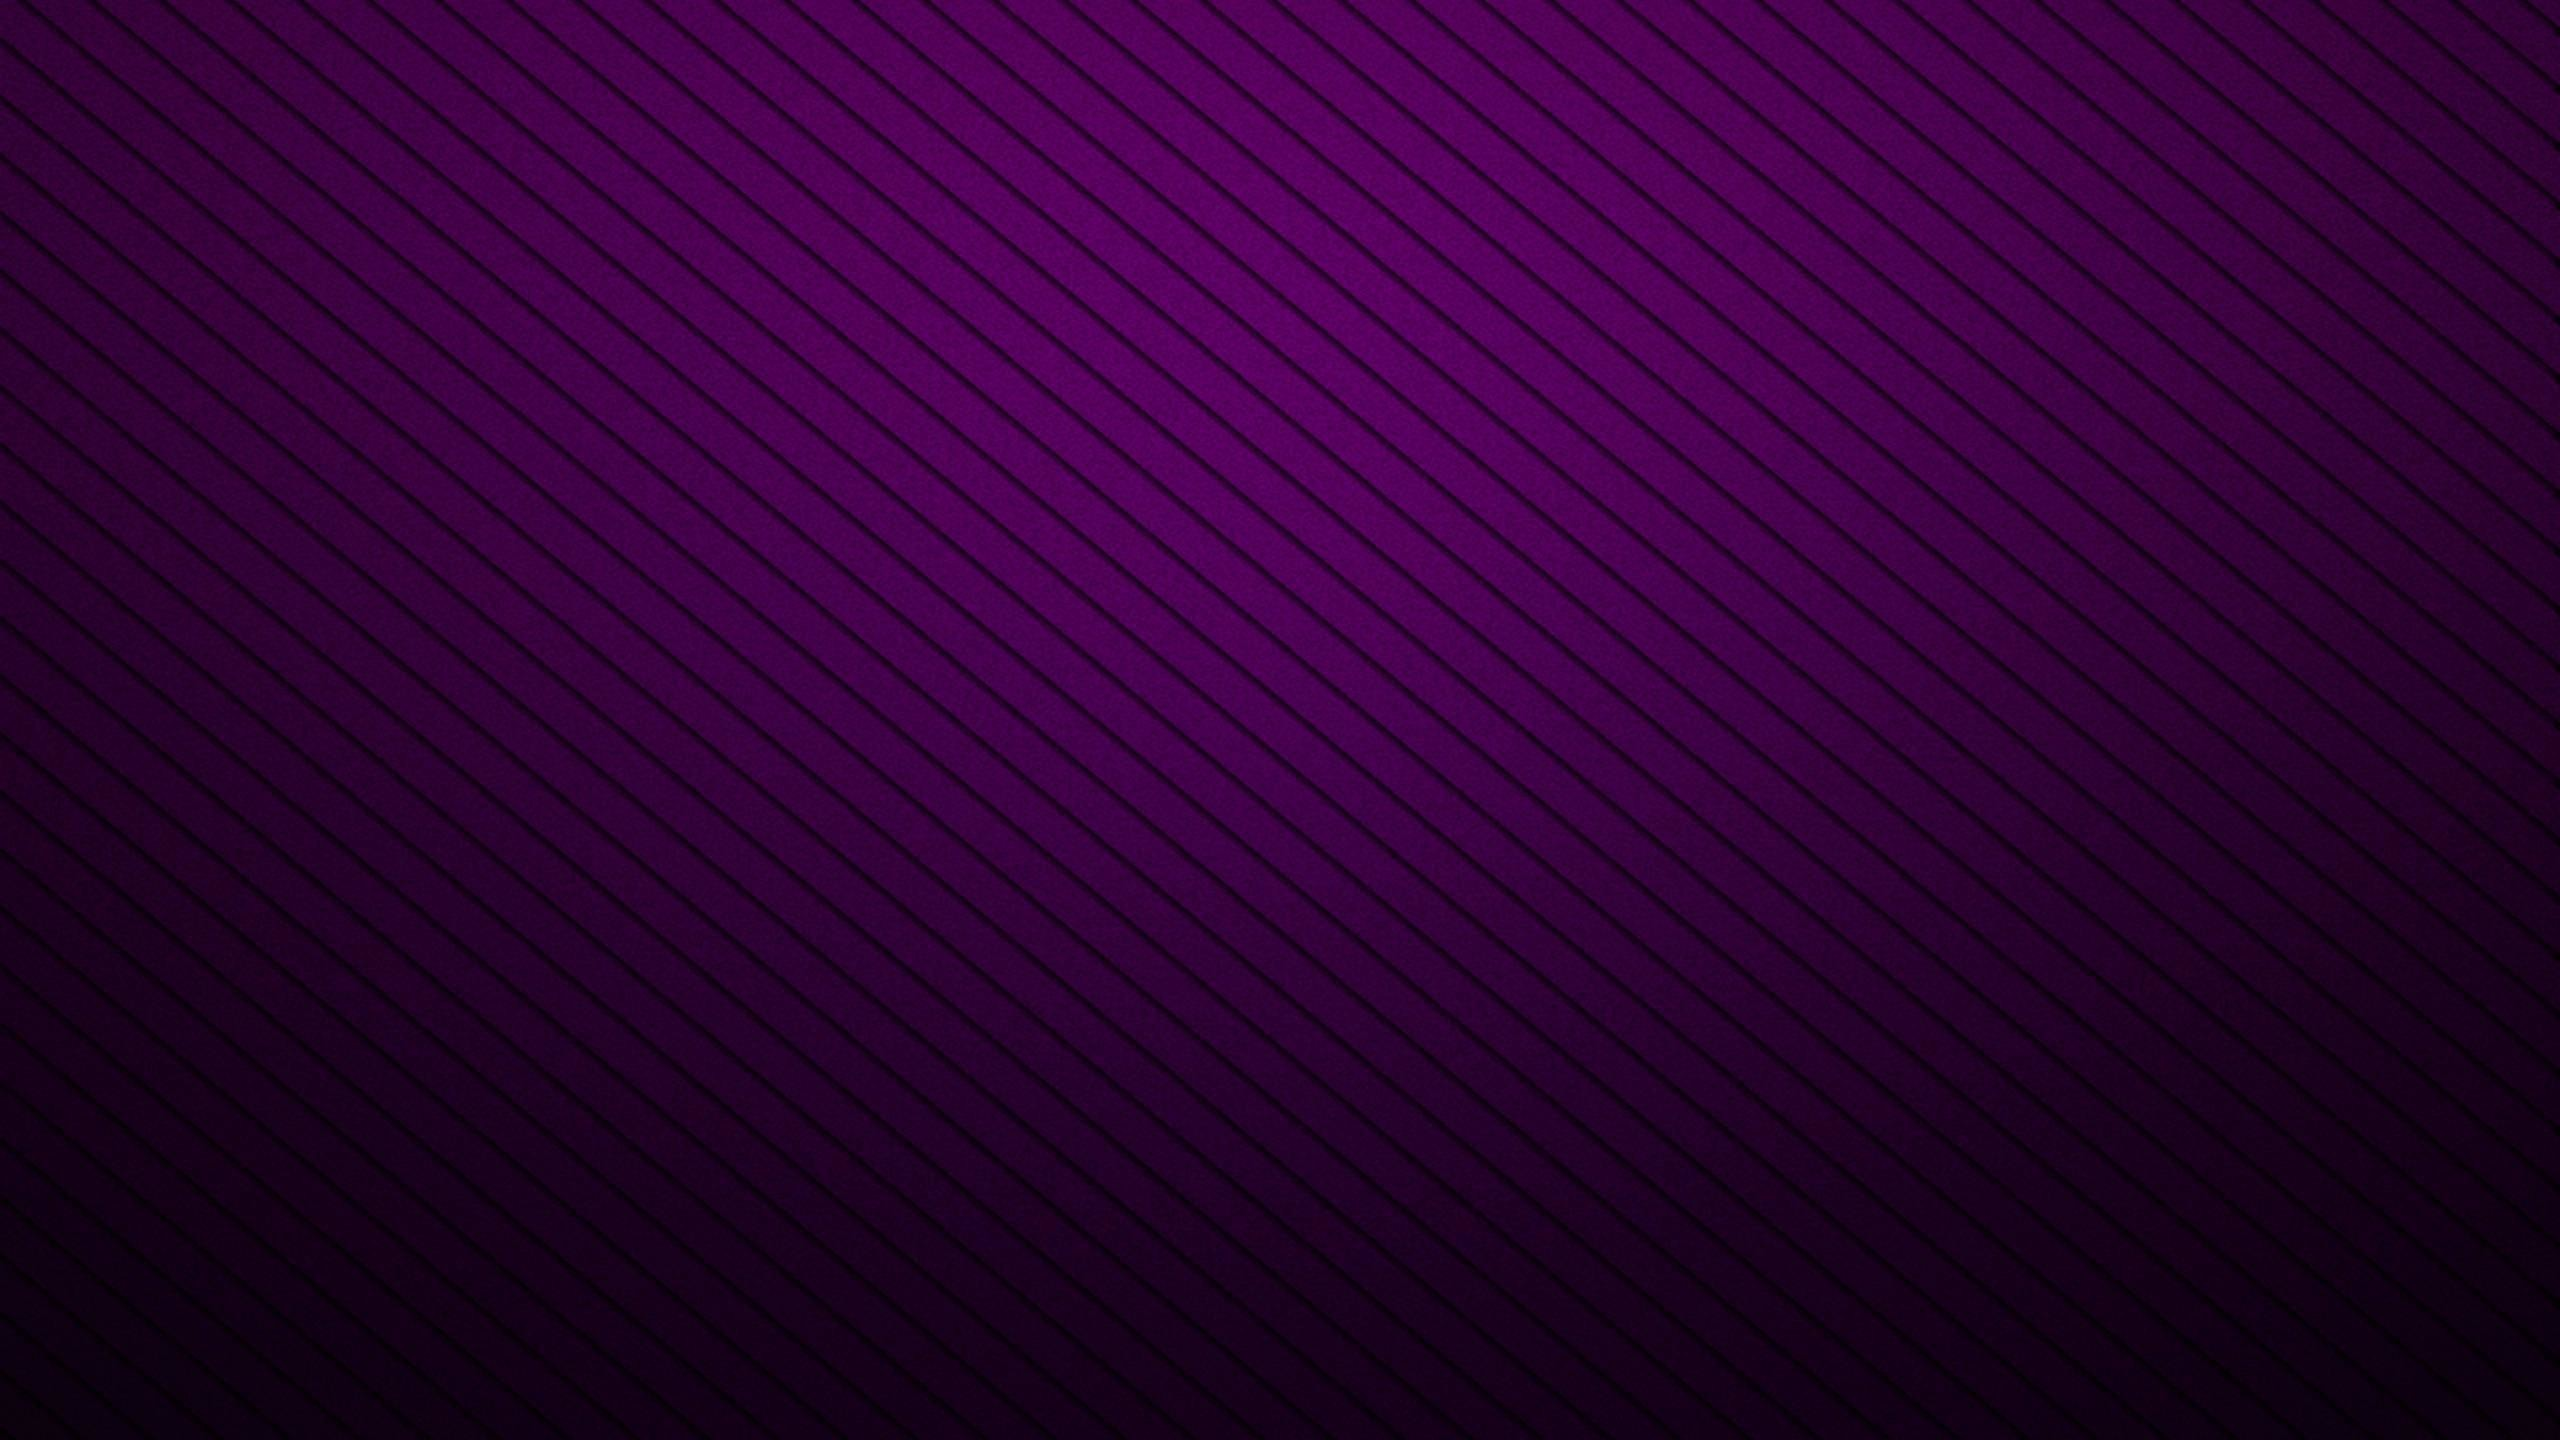 2560x1440 Purple And Black Texture Wallpaper Hd Picture 62141 Label: and .